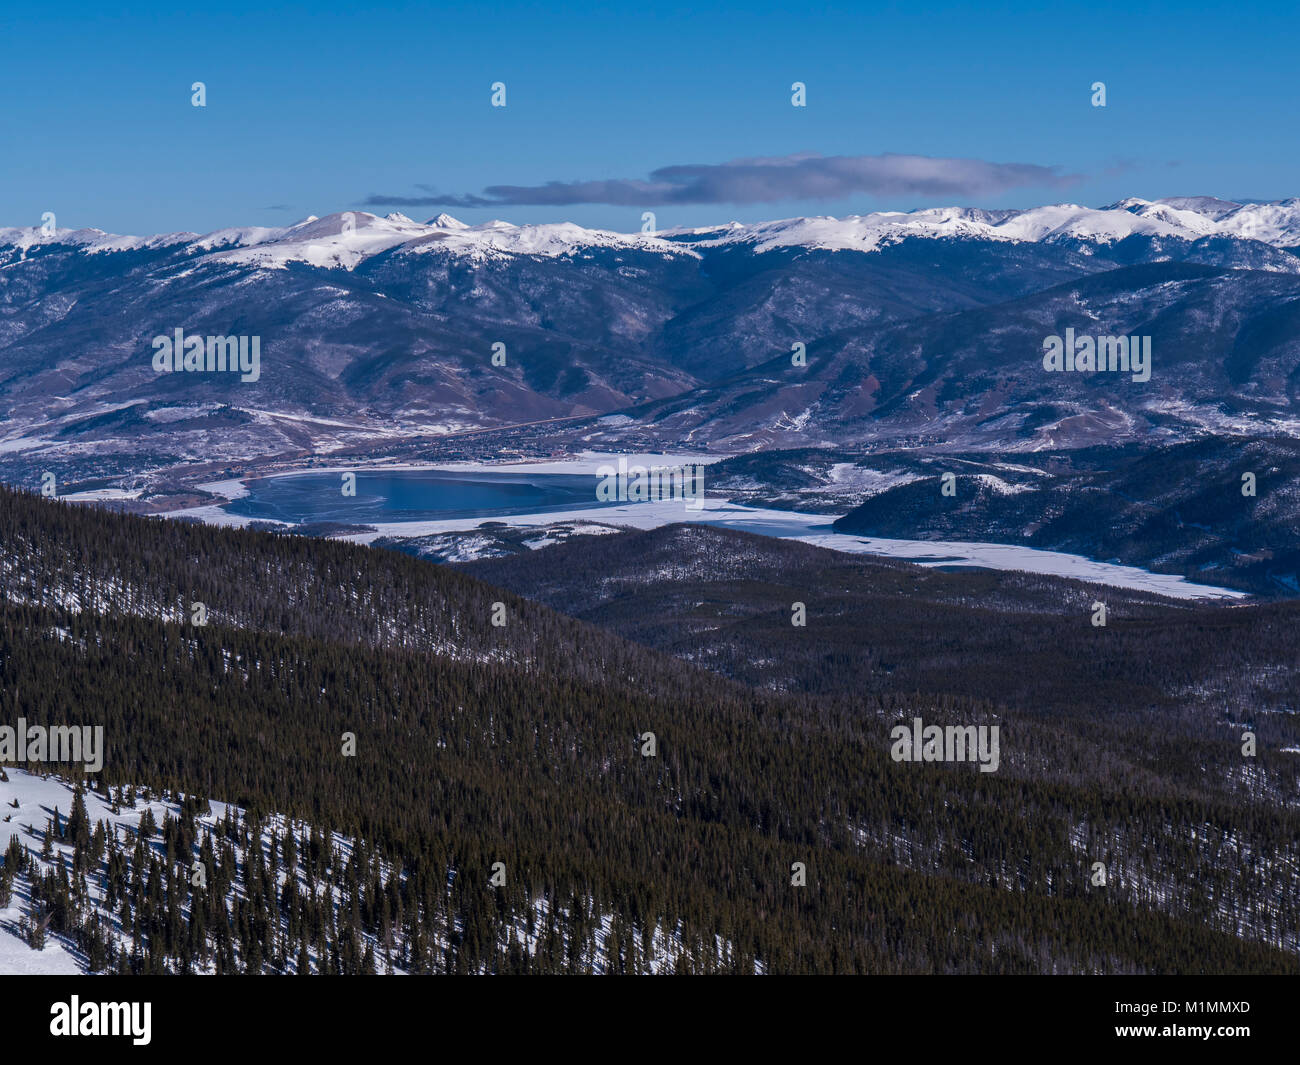 Dillon Reservoir from atop Peak 6, Breckenridge Ski Resort, Breckenridge, Colorado. - Stock Image